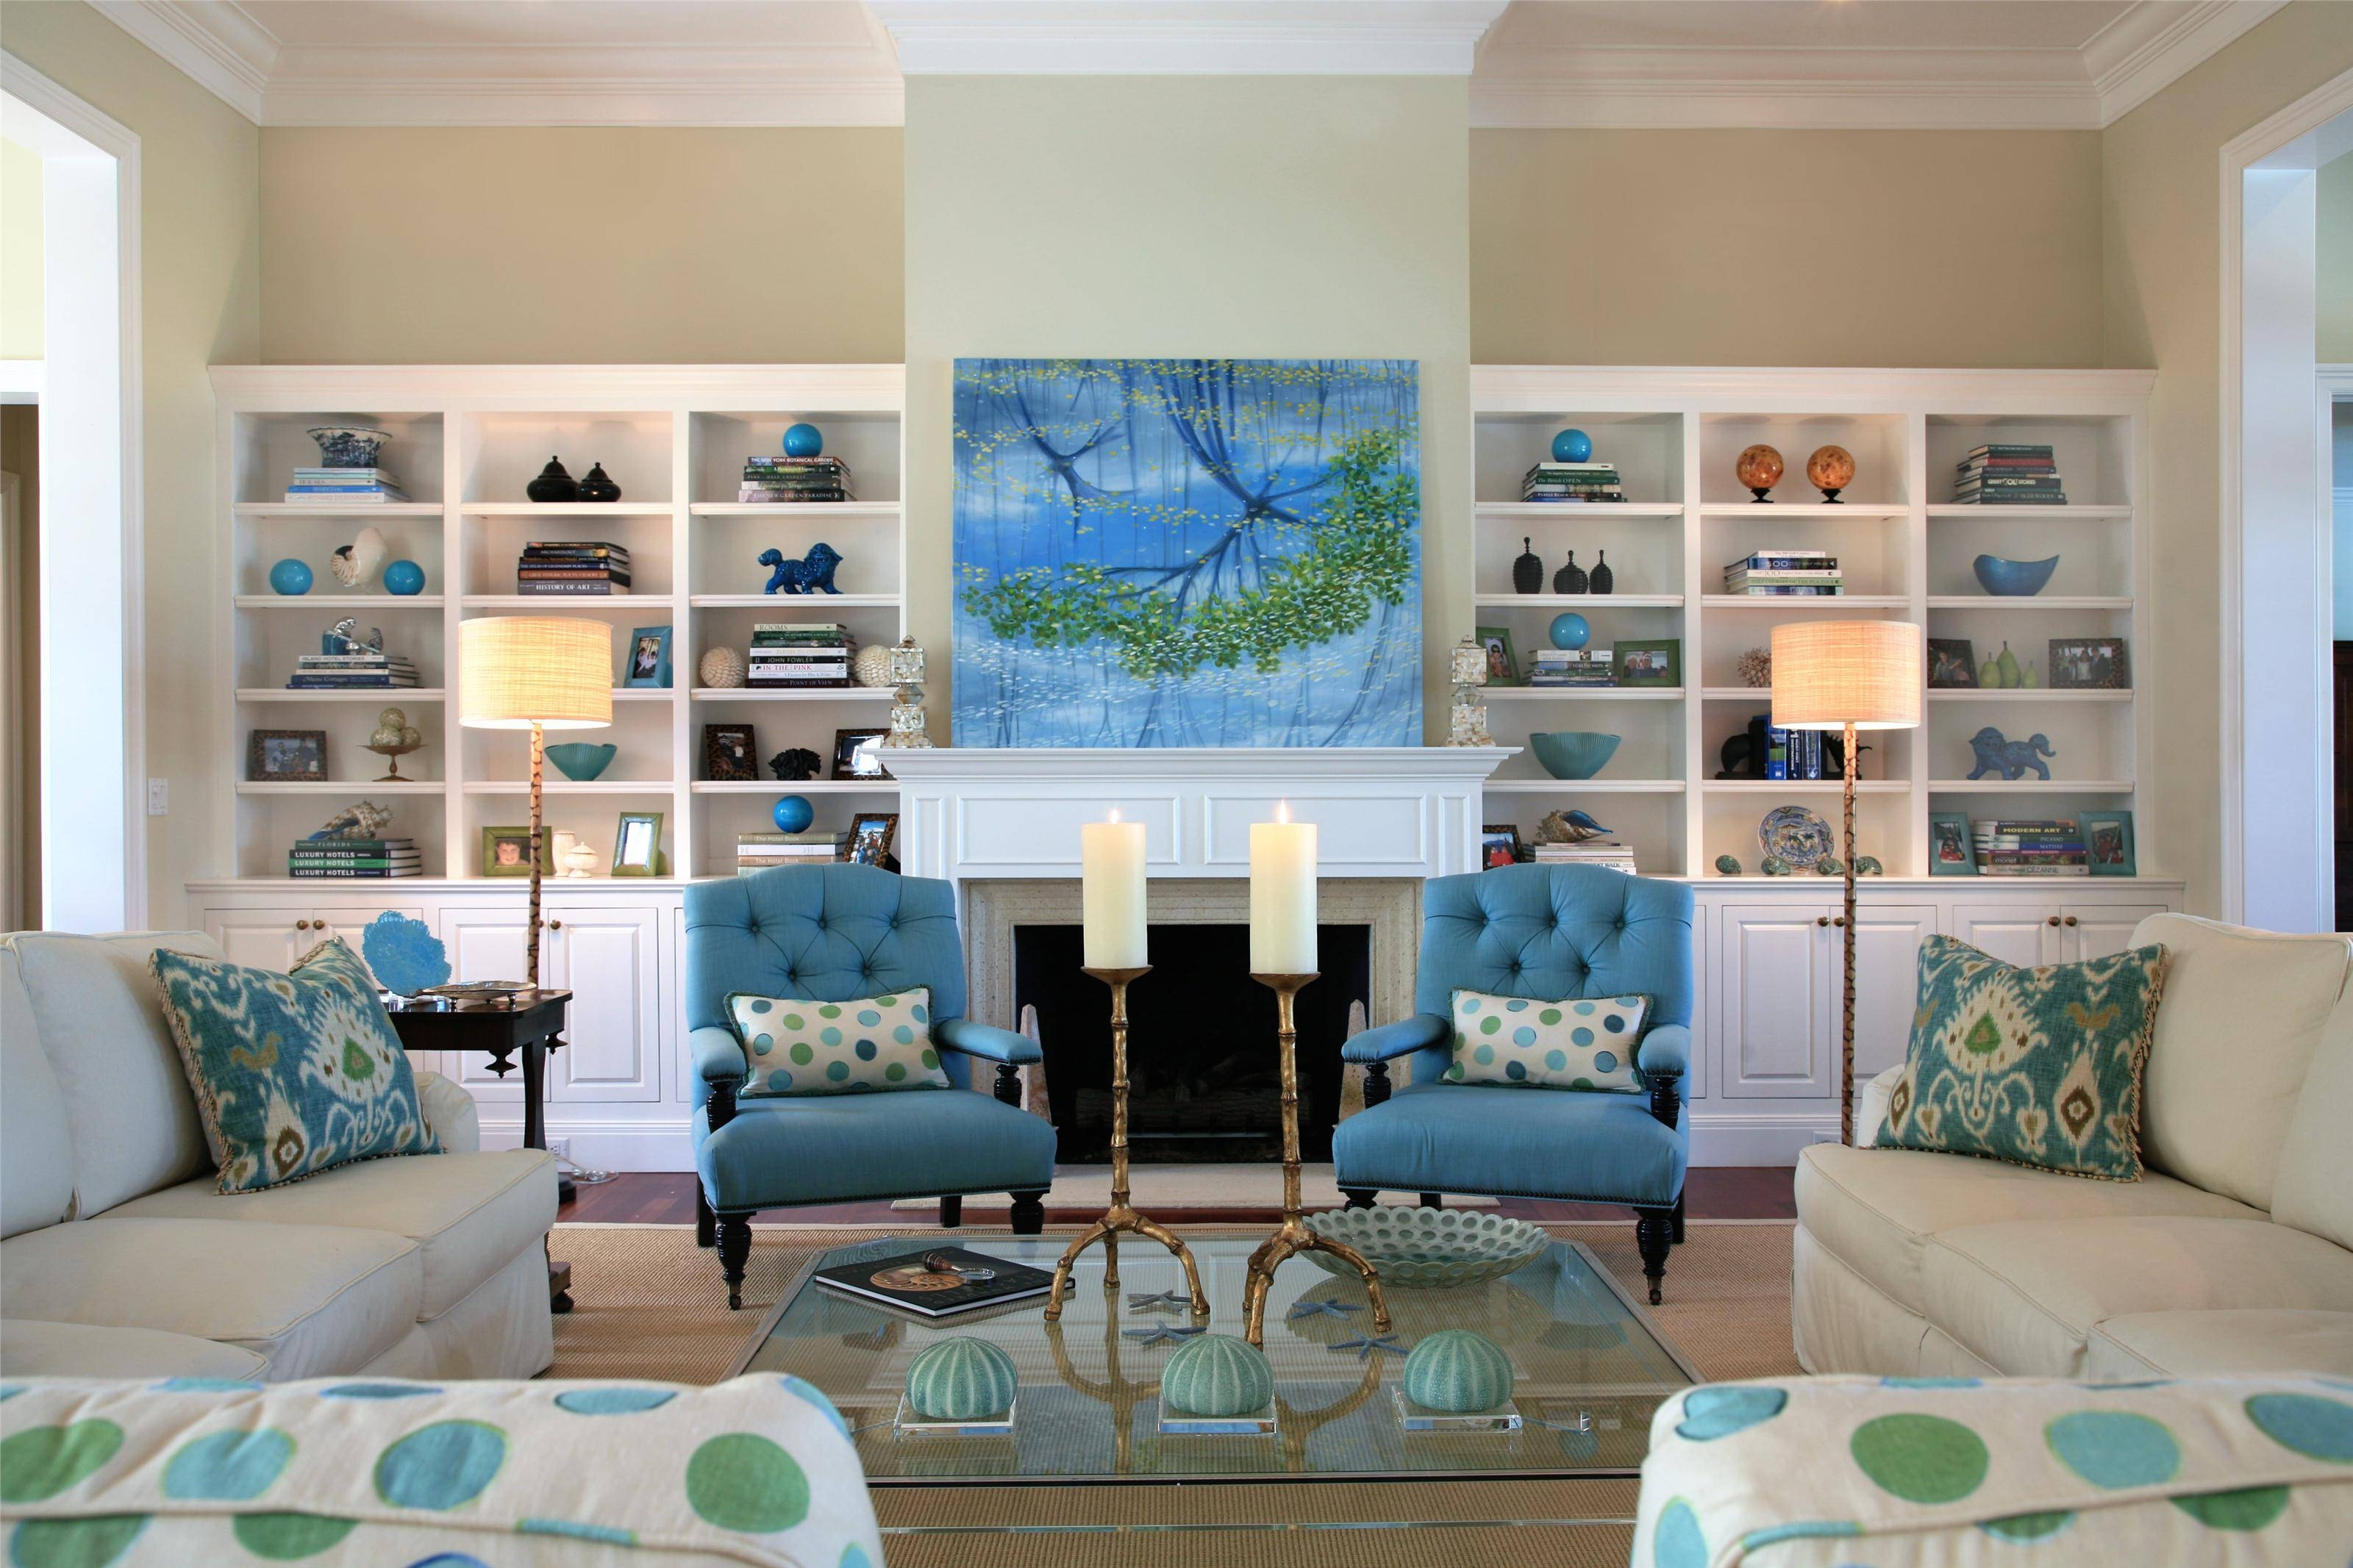 Bring Beach To Your House With Coastal Wall Decor — Unique Regarding 2018 Beach Cottage Wall Decors (View 18 of 25)